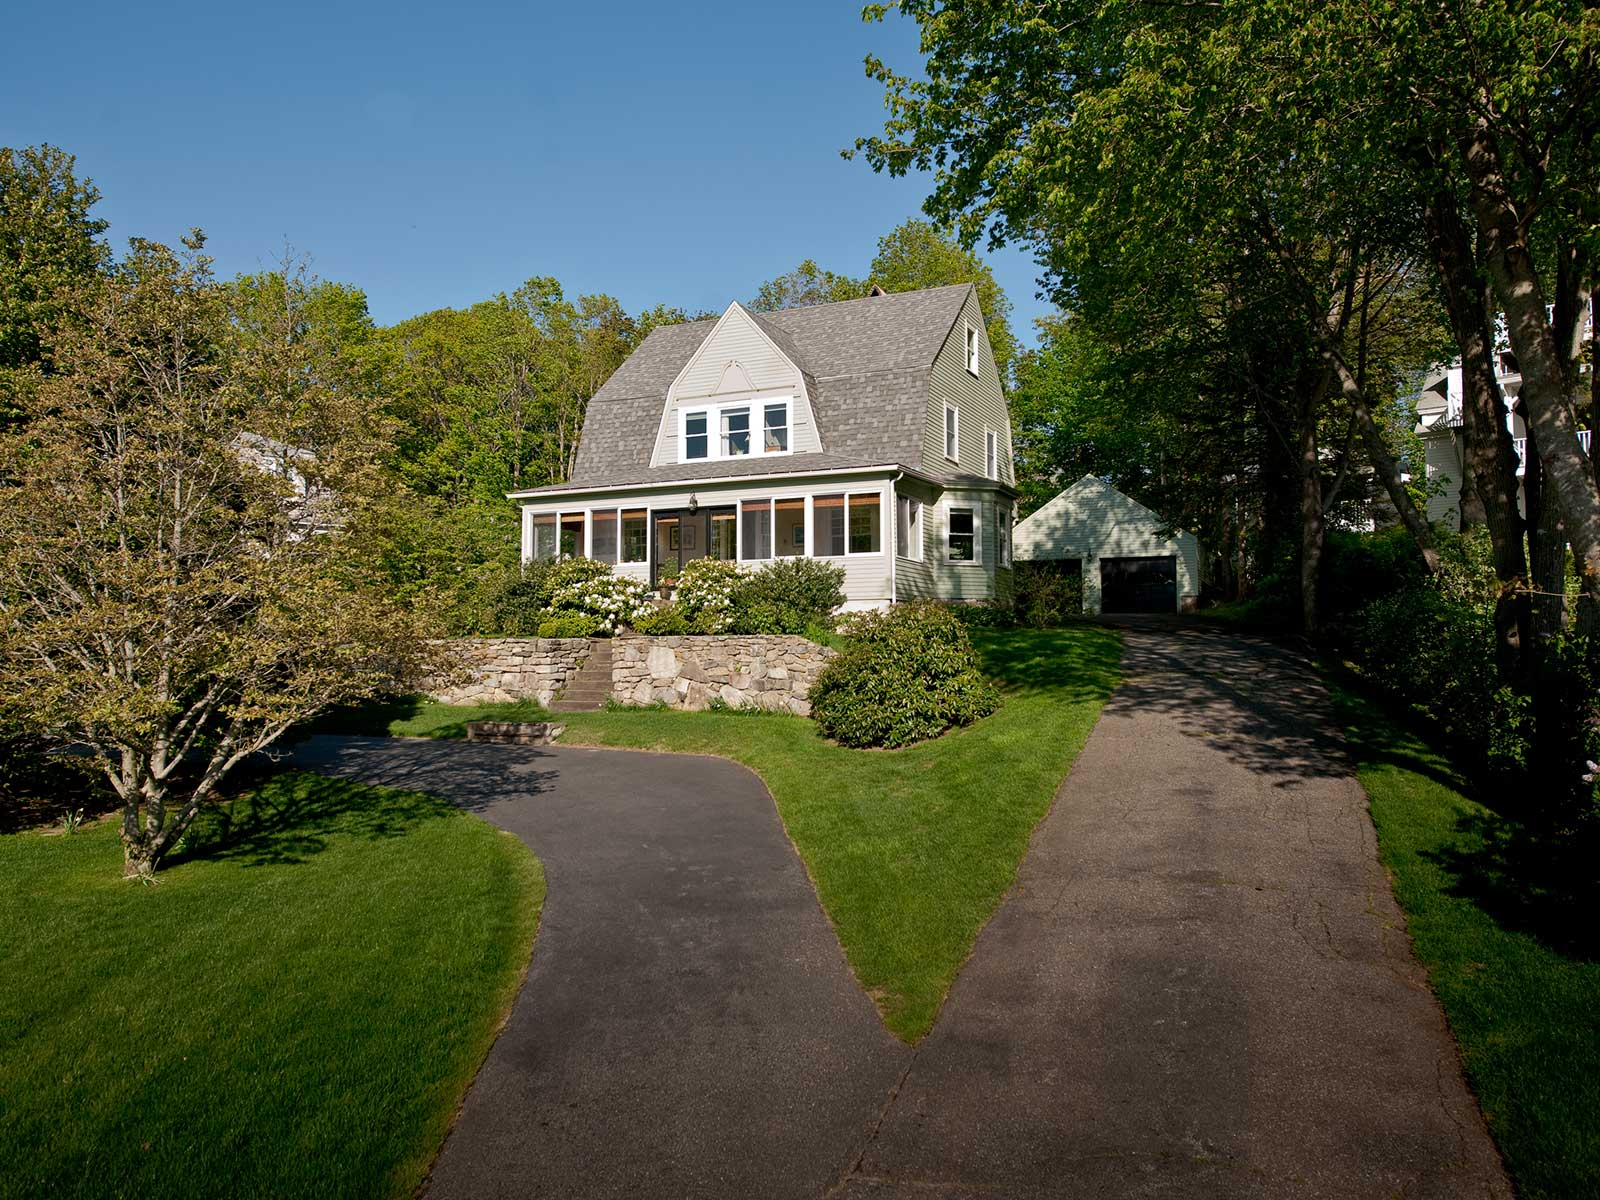 Single Family Home for Sale at Dutch Colonial in the Harbor 8 Lilac Lane York, Maine 03909 United States